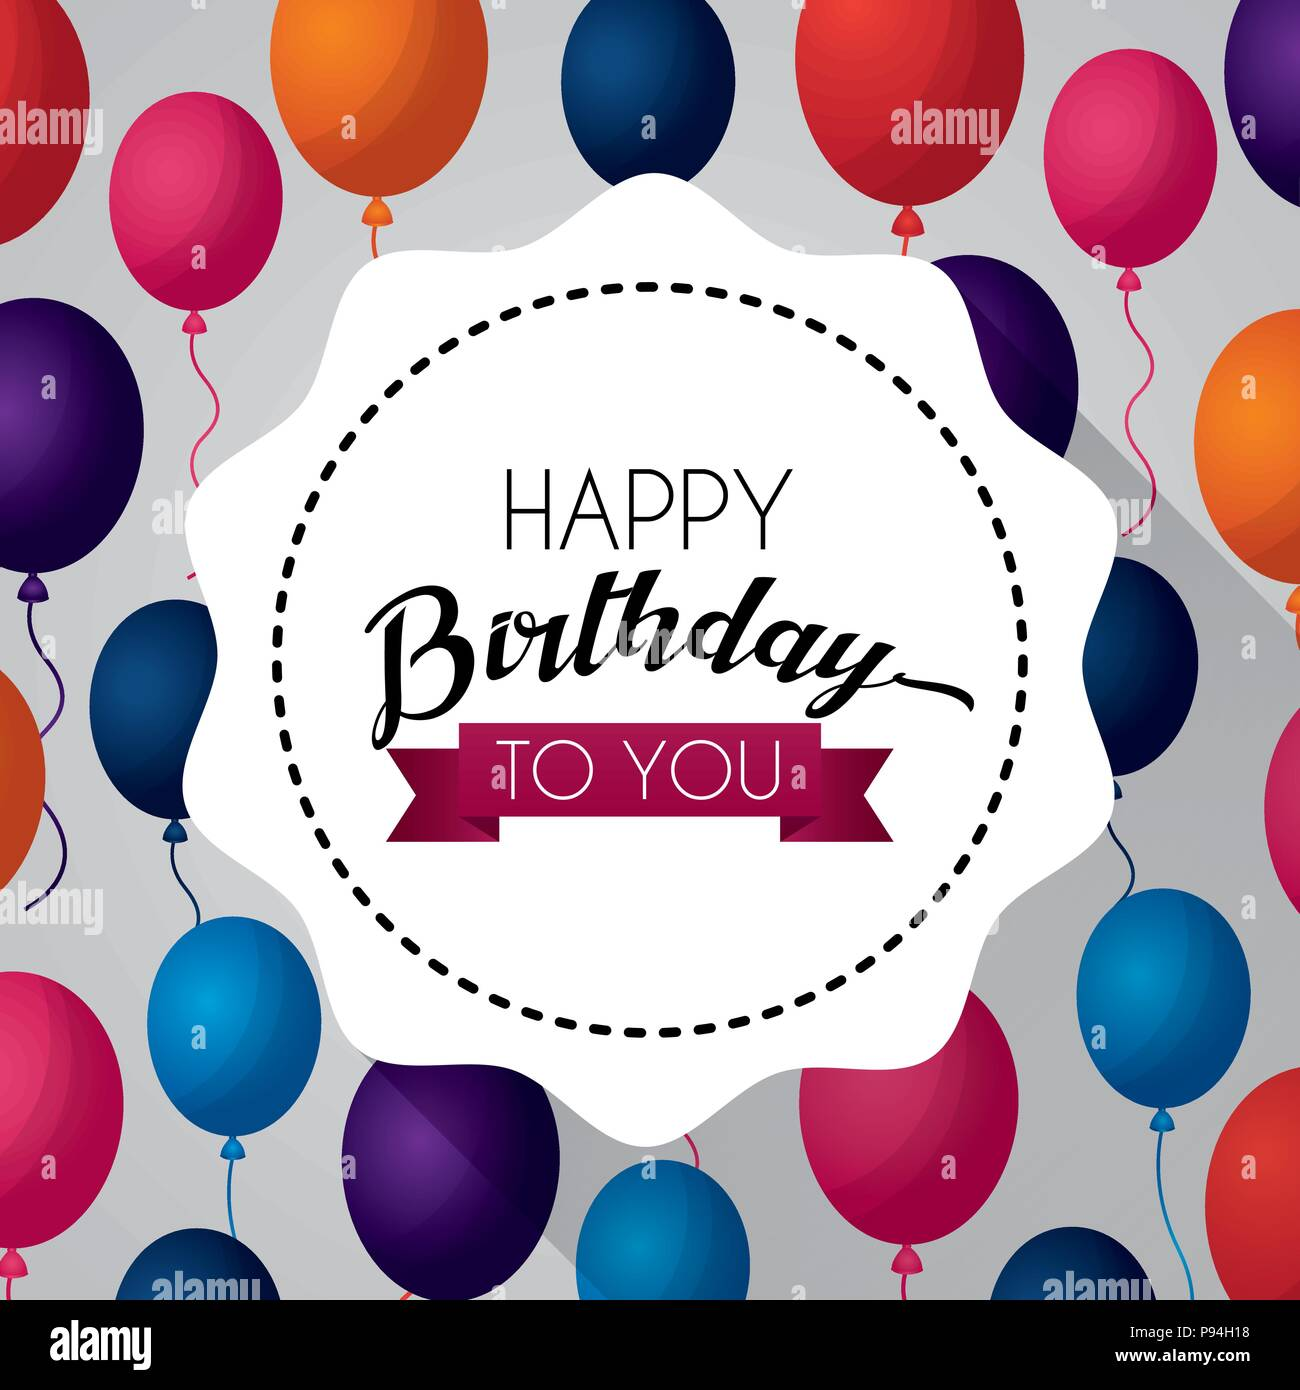 Happy birthday card sticker sign colorsballoons backgorund vector illustration